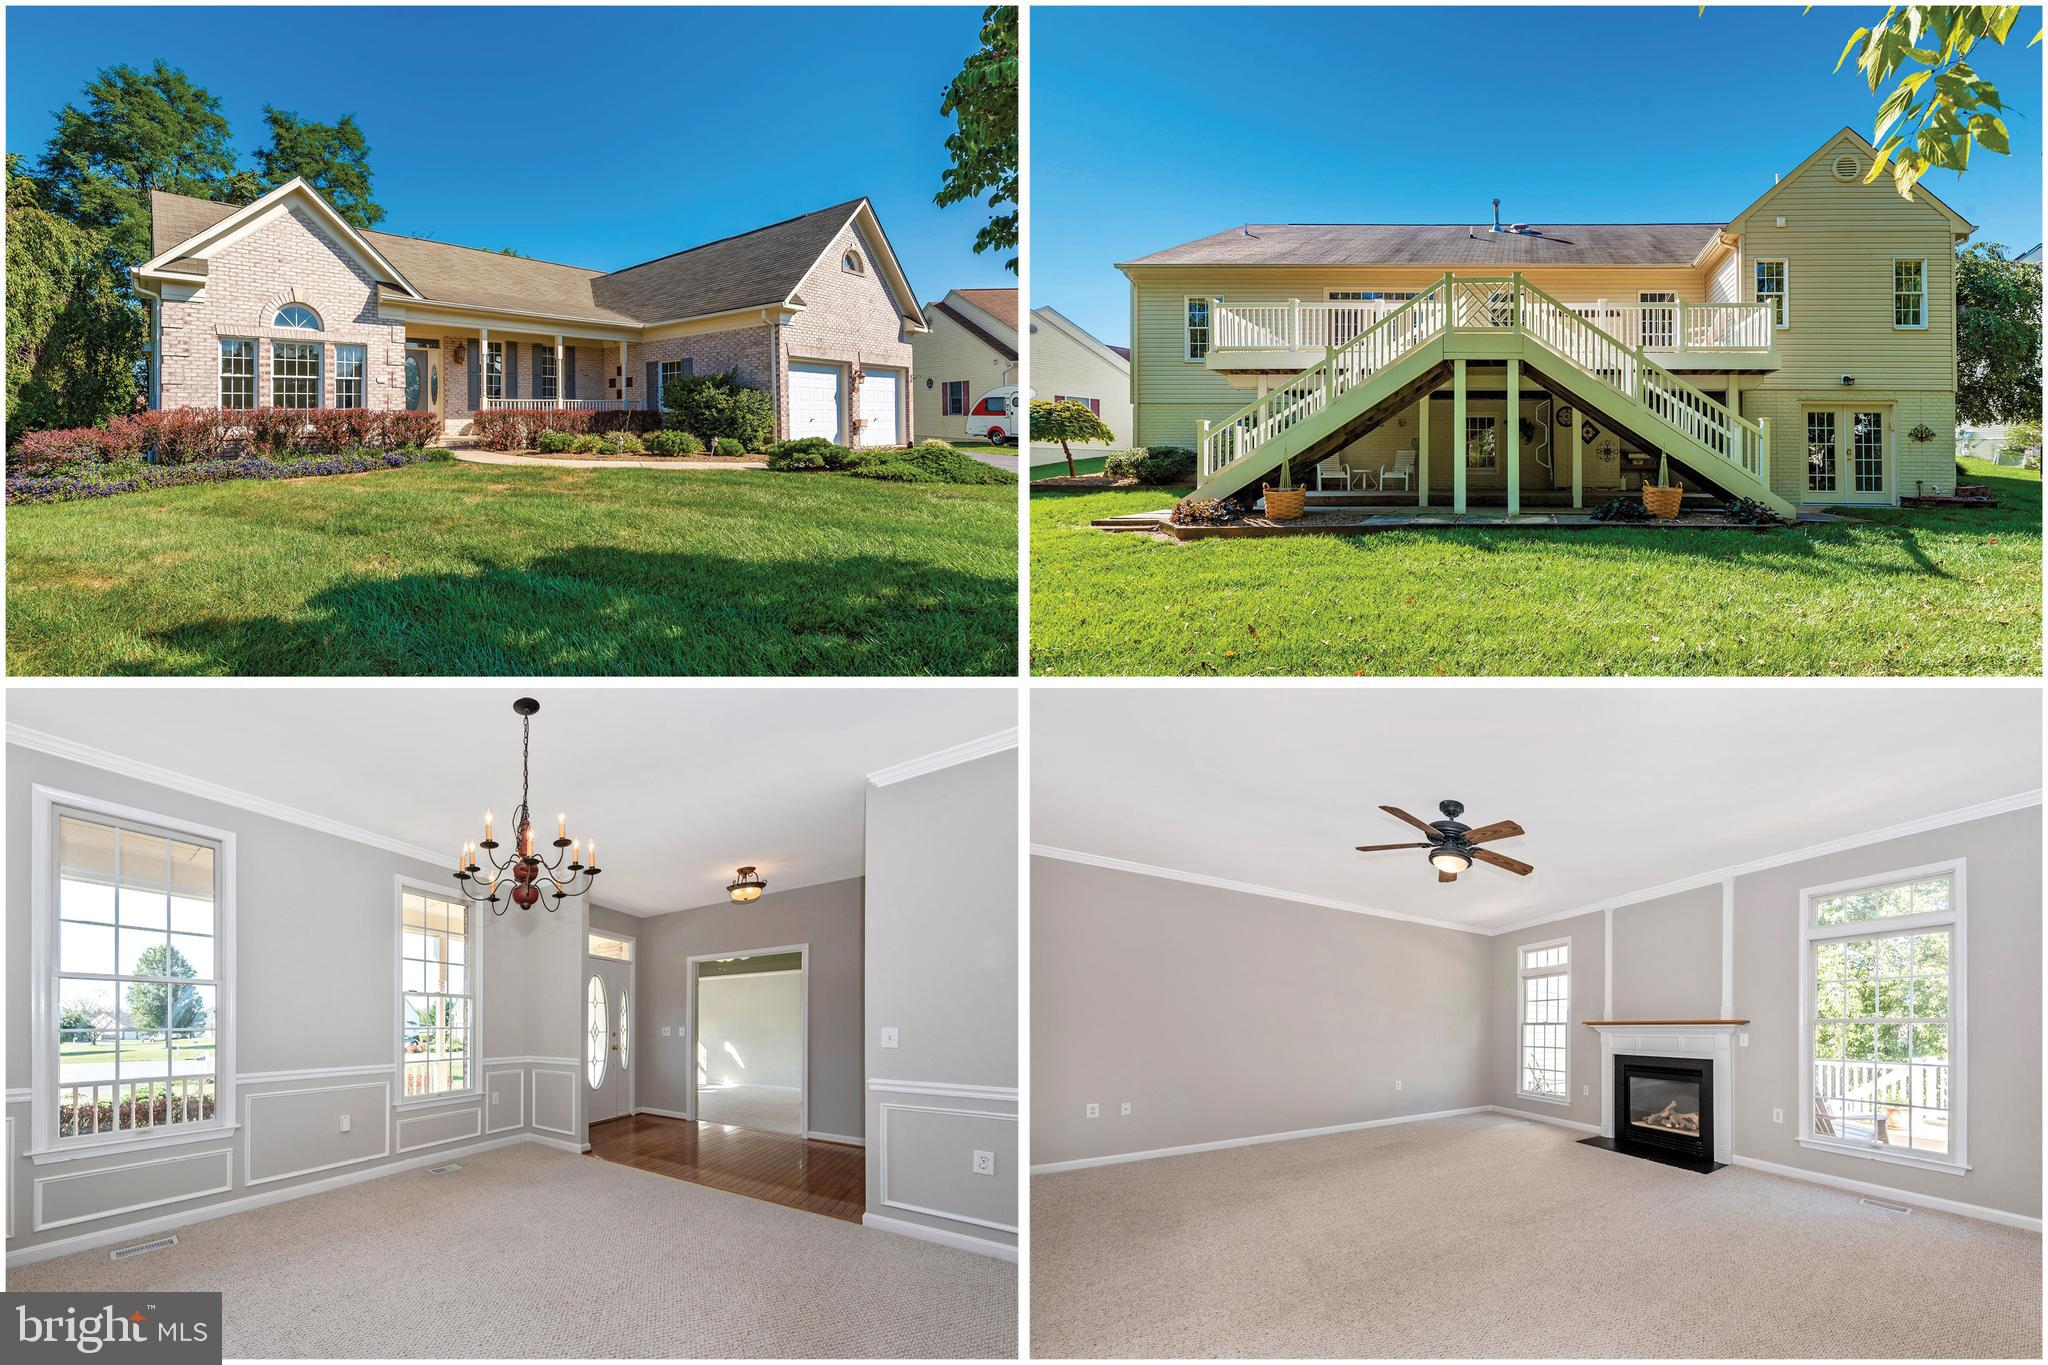 Beautiful Raised Rancher with 3600 sq ft plus, very spacious and open with tons of windows bringing